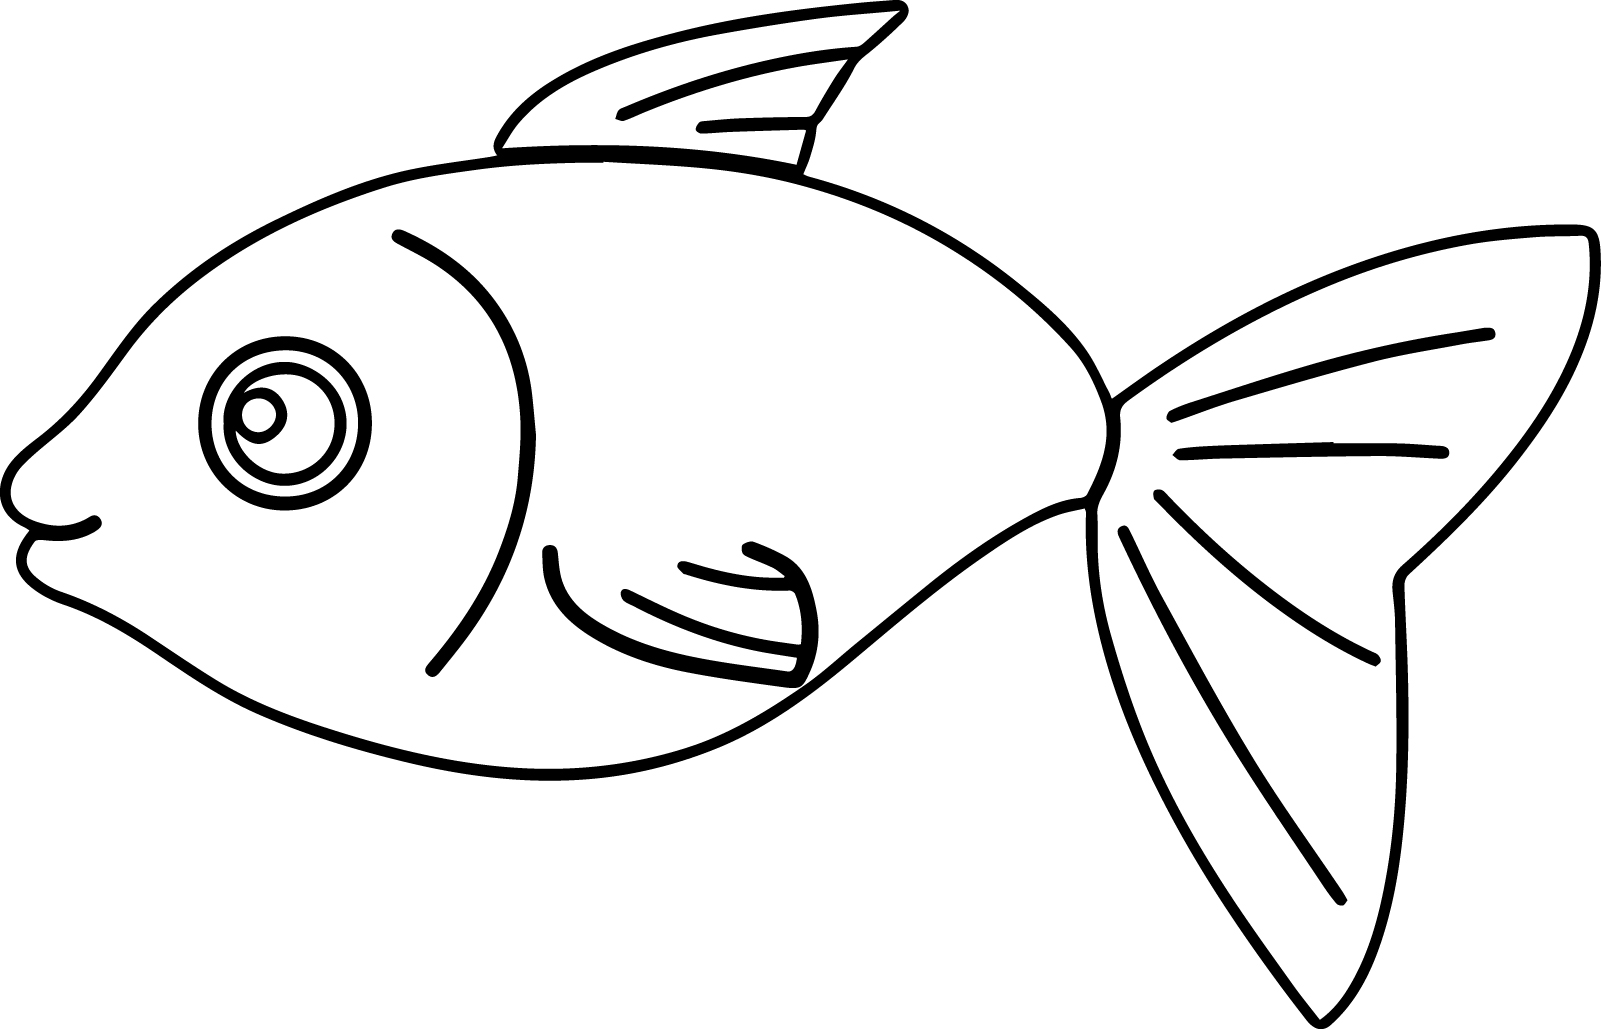 cartoon basic fish coloring page sheet - Fish Coloring Pages